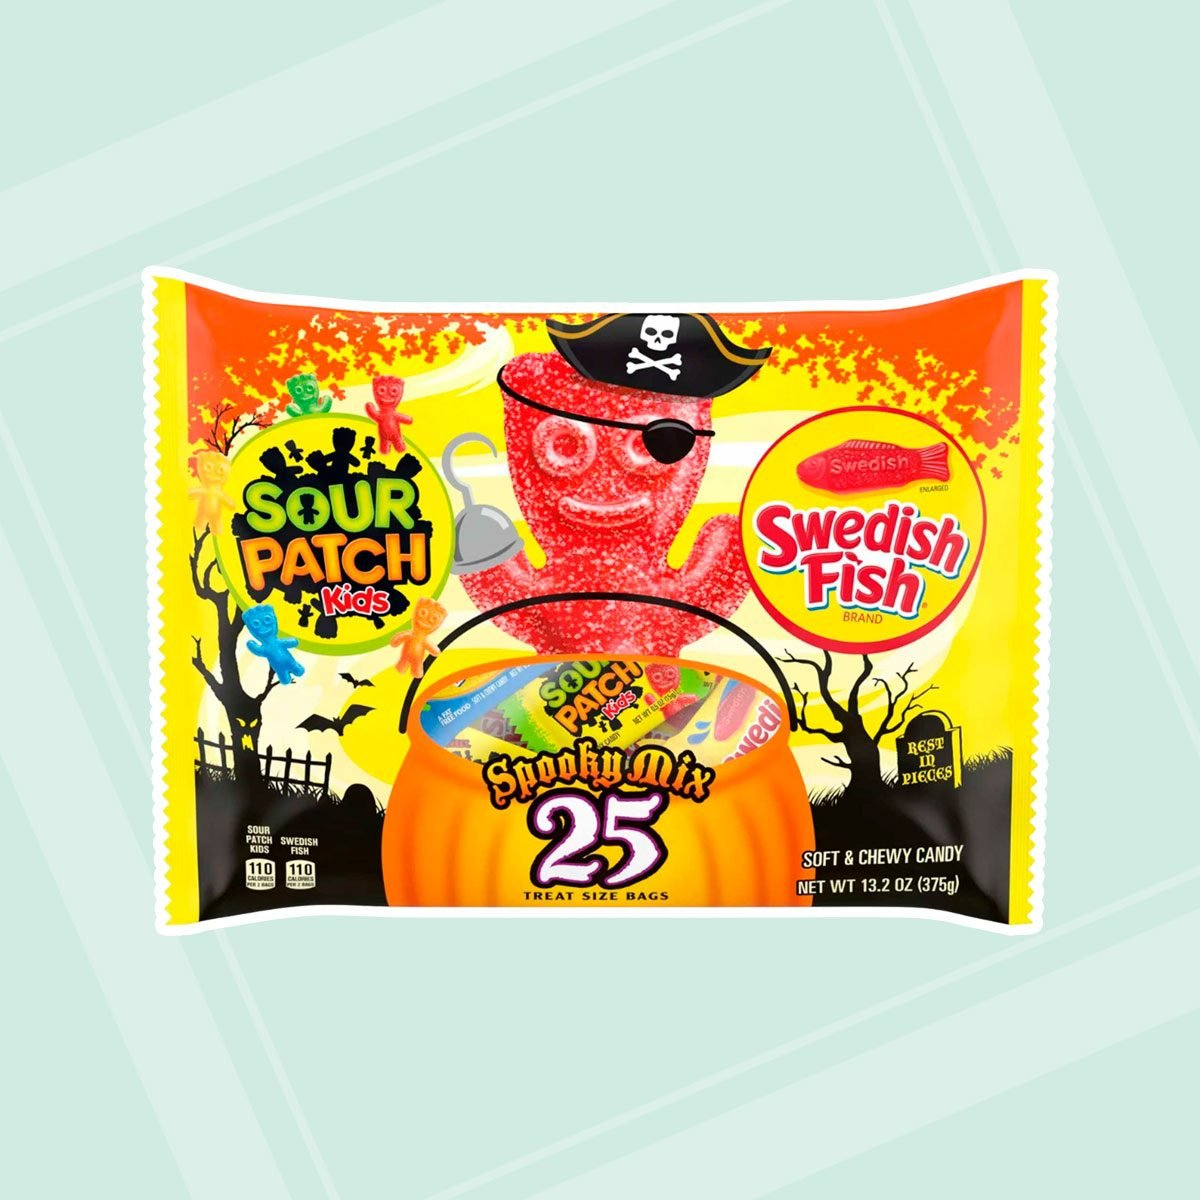 Sour Patch Kids & Swedish Fish Halloween treat size